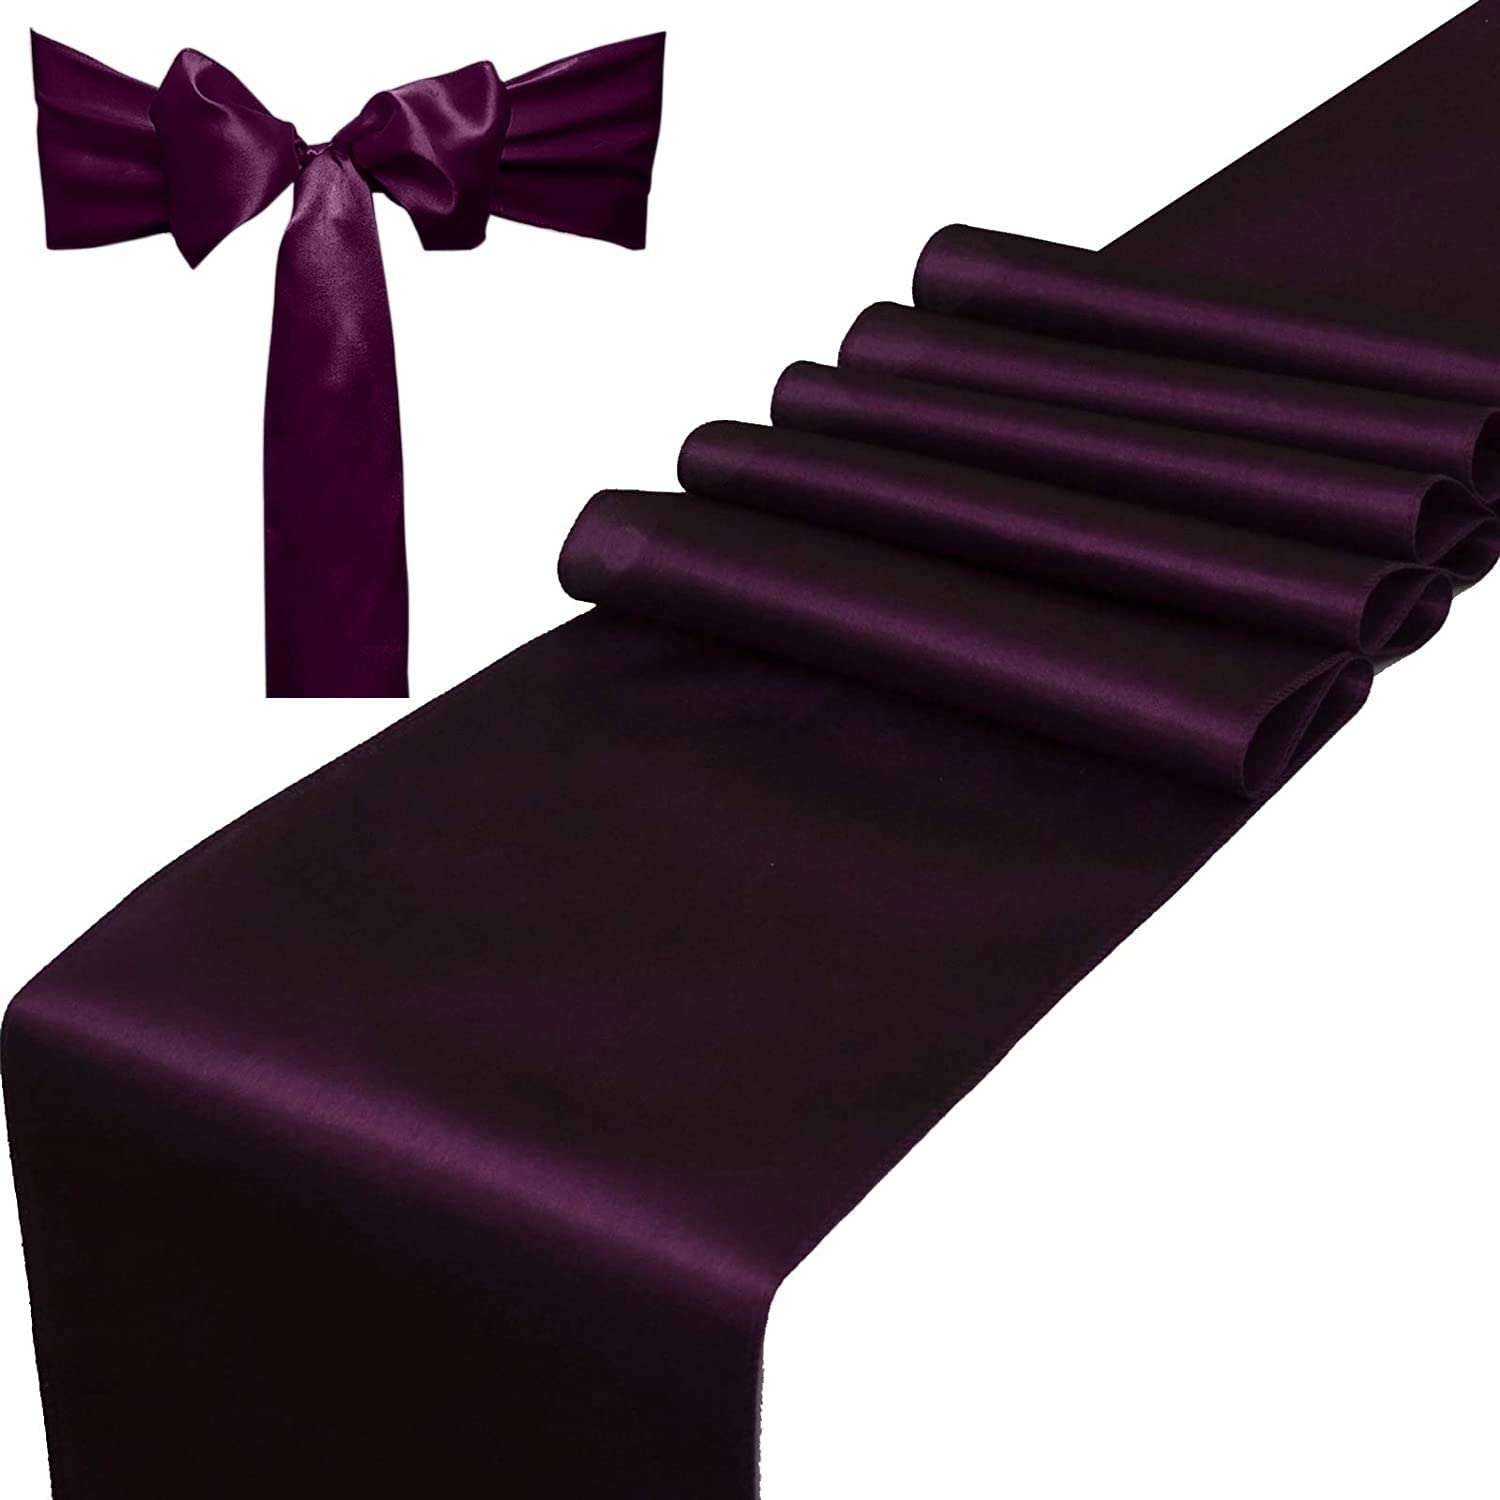 THE DECOR TEX Satin Table Runners 12 x 108 inch for Wedding Banquet Reception Party Decoration, Party Table Runner (Combo 2 Table Runner + 10 Chair Saches, Eggplant)